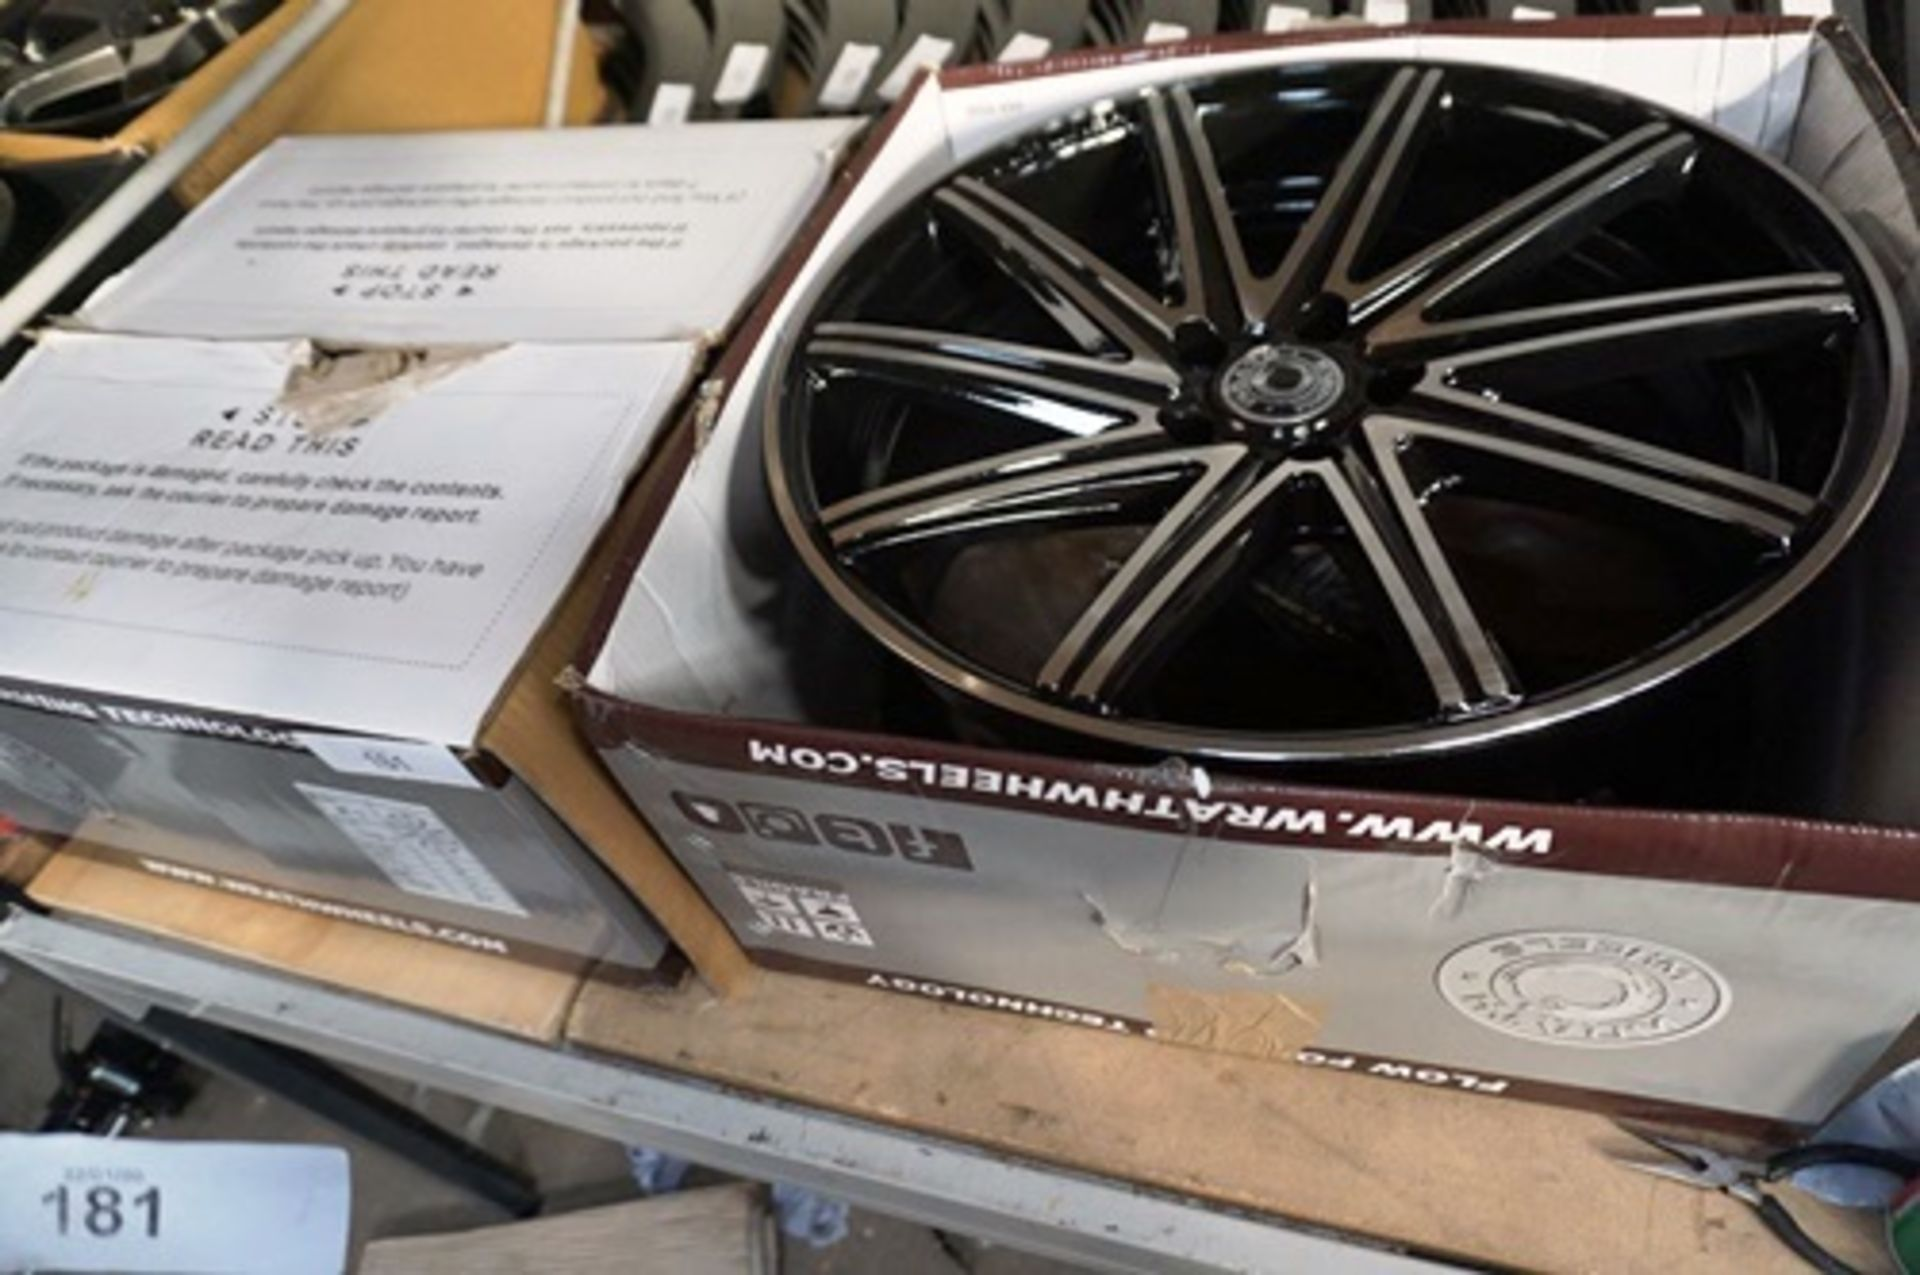 Lot 181 - 2 x Wrath Wheels alloys, model WF-2, size T19 x 8.0 offset 42, 5 holes, P.C.D 112 - New in box (